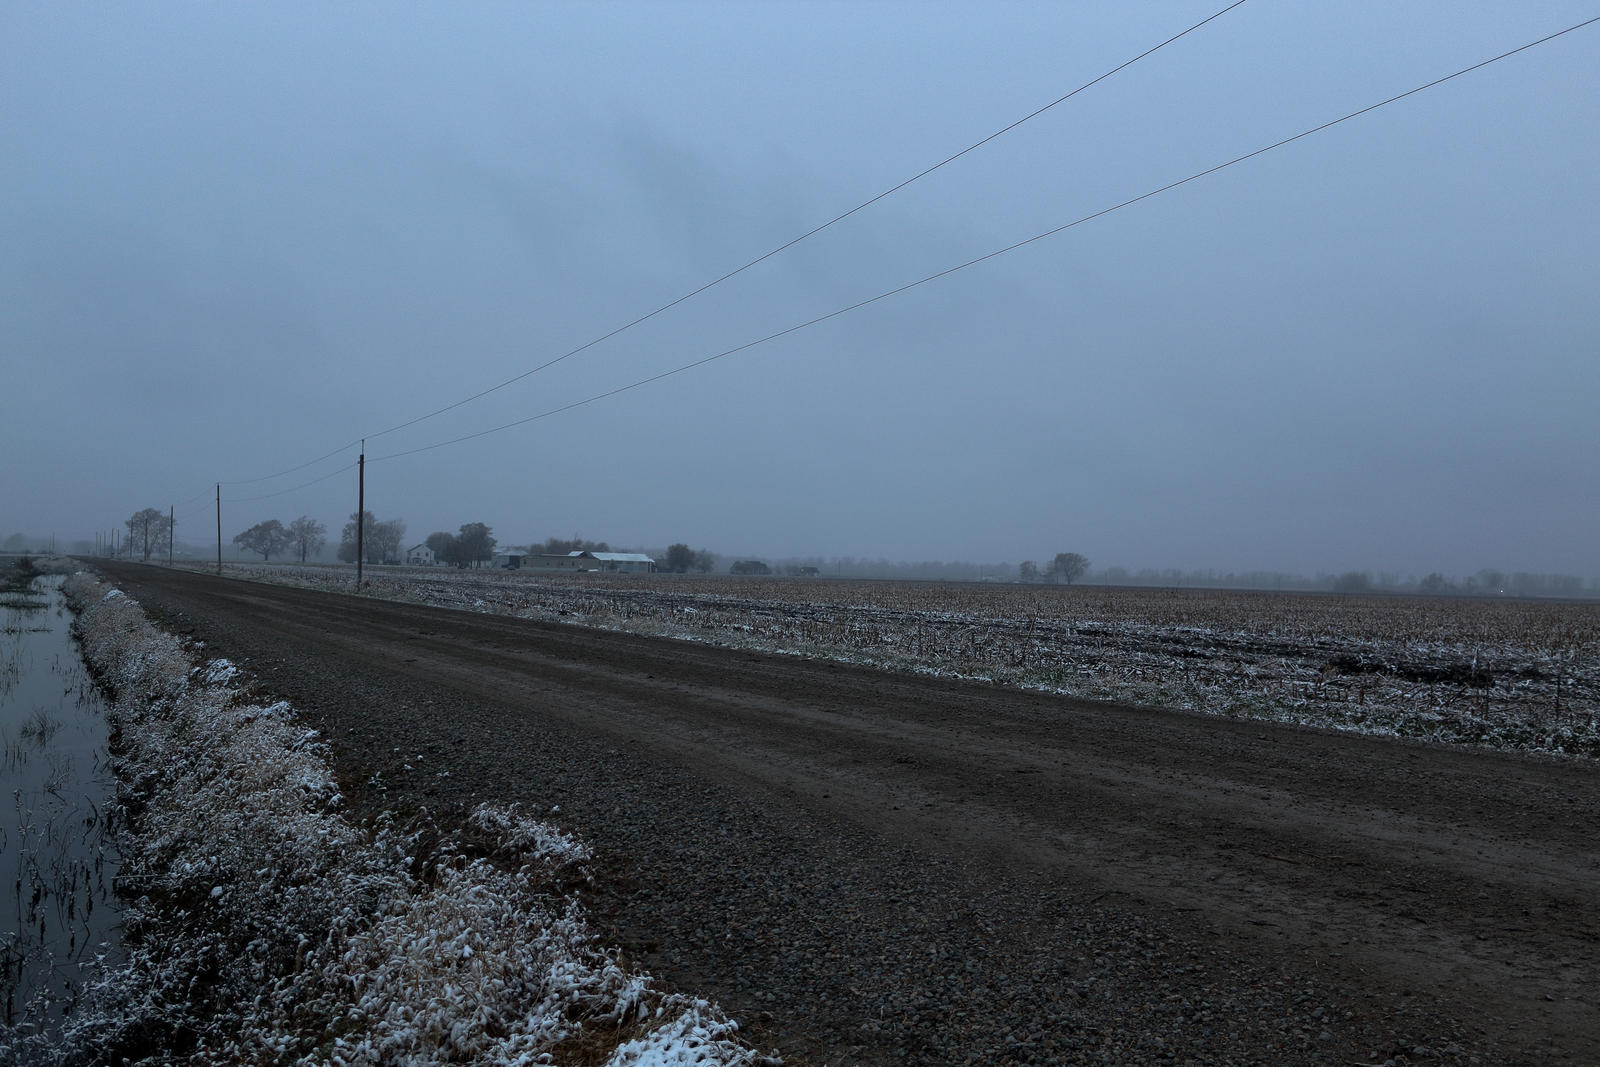 2018-11-08 - Snow - Percival, IA by WxKnowltey